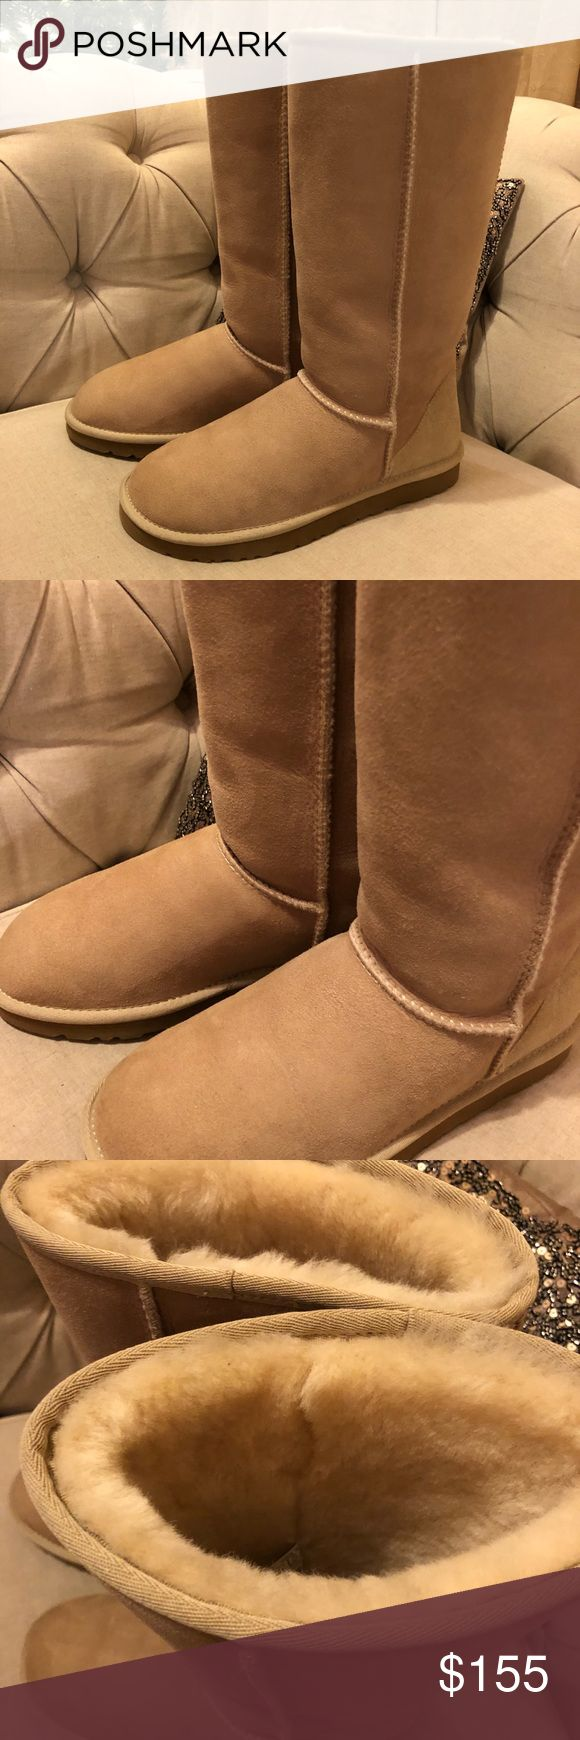 BRAND NEW AUTHENTIC UGG BOOT Selling my whole ugg collection!! Take advantage they were only worn a handful of times each!   Brand new never worn!! Amazing boot! No stains or issues. The color goes with everything. Bought by me from Nordstrom. All my uggs were bought from Nordstrom UGG Shoes Winter & Rain Boots